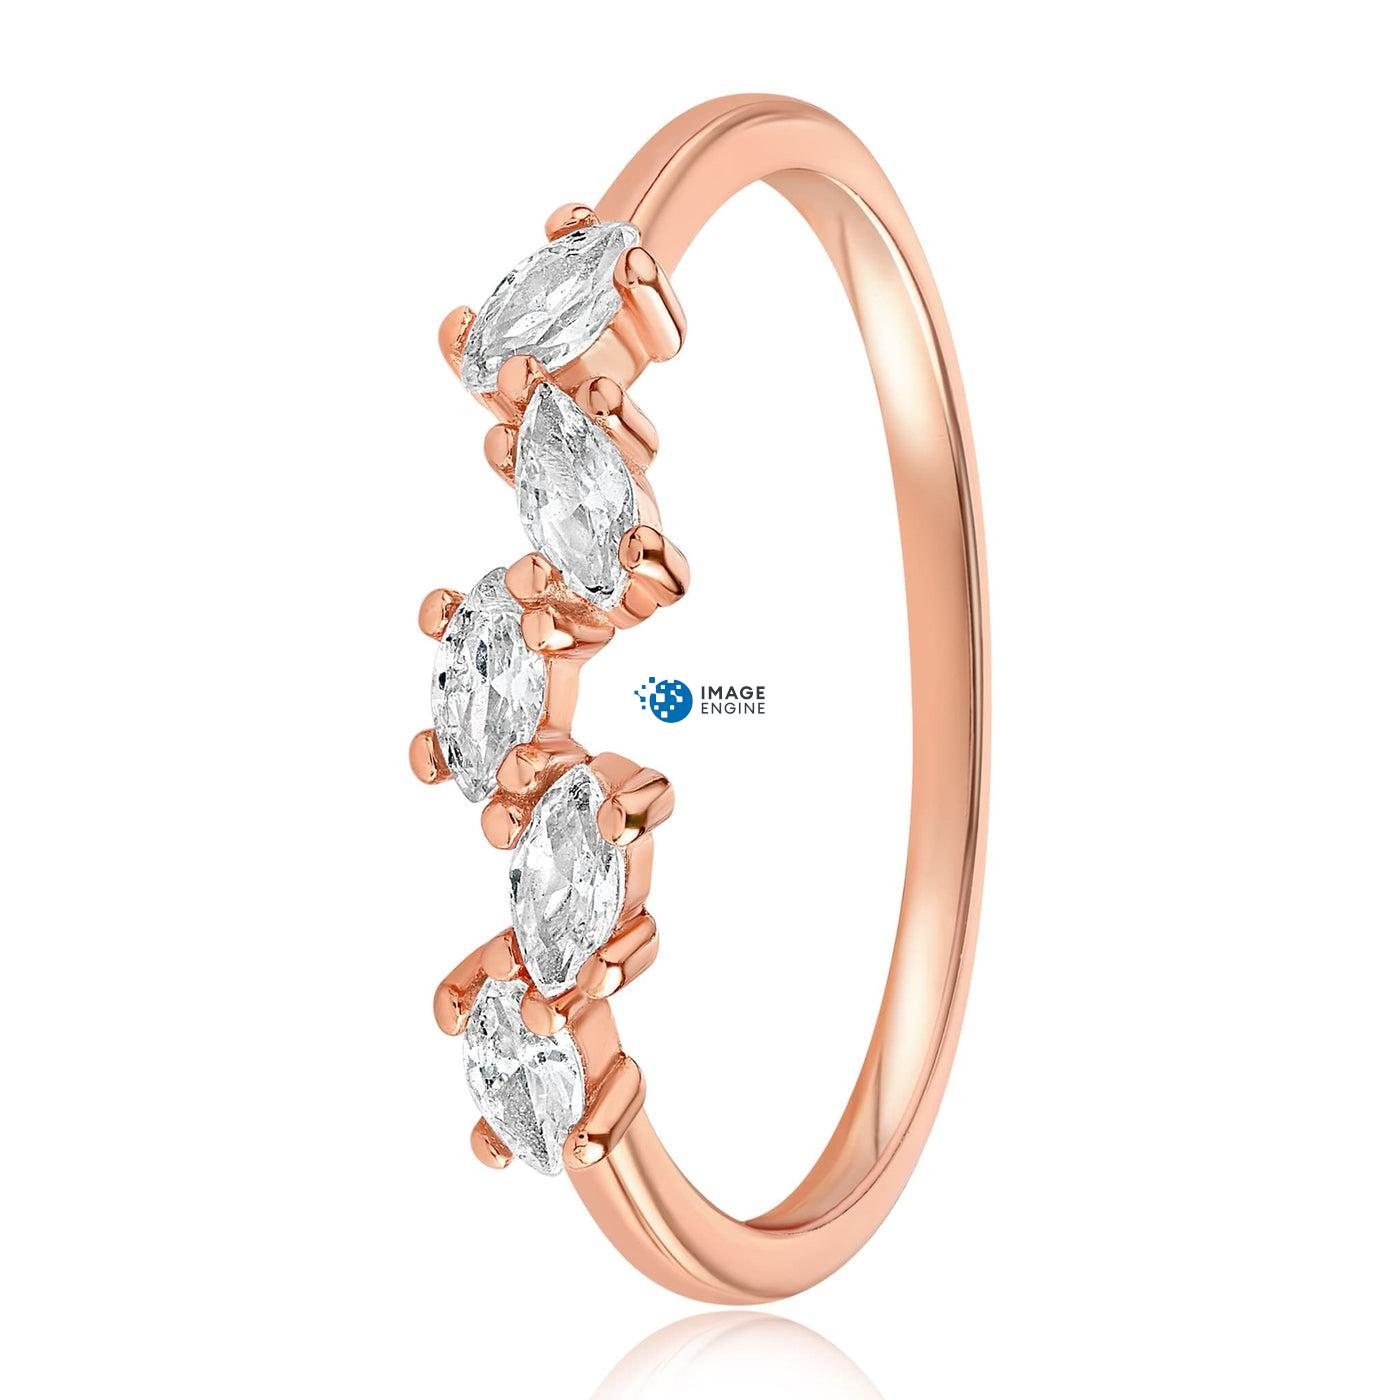 Genna Round Cut Ring - Side View - 18K Rose Gold Vermeil